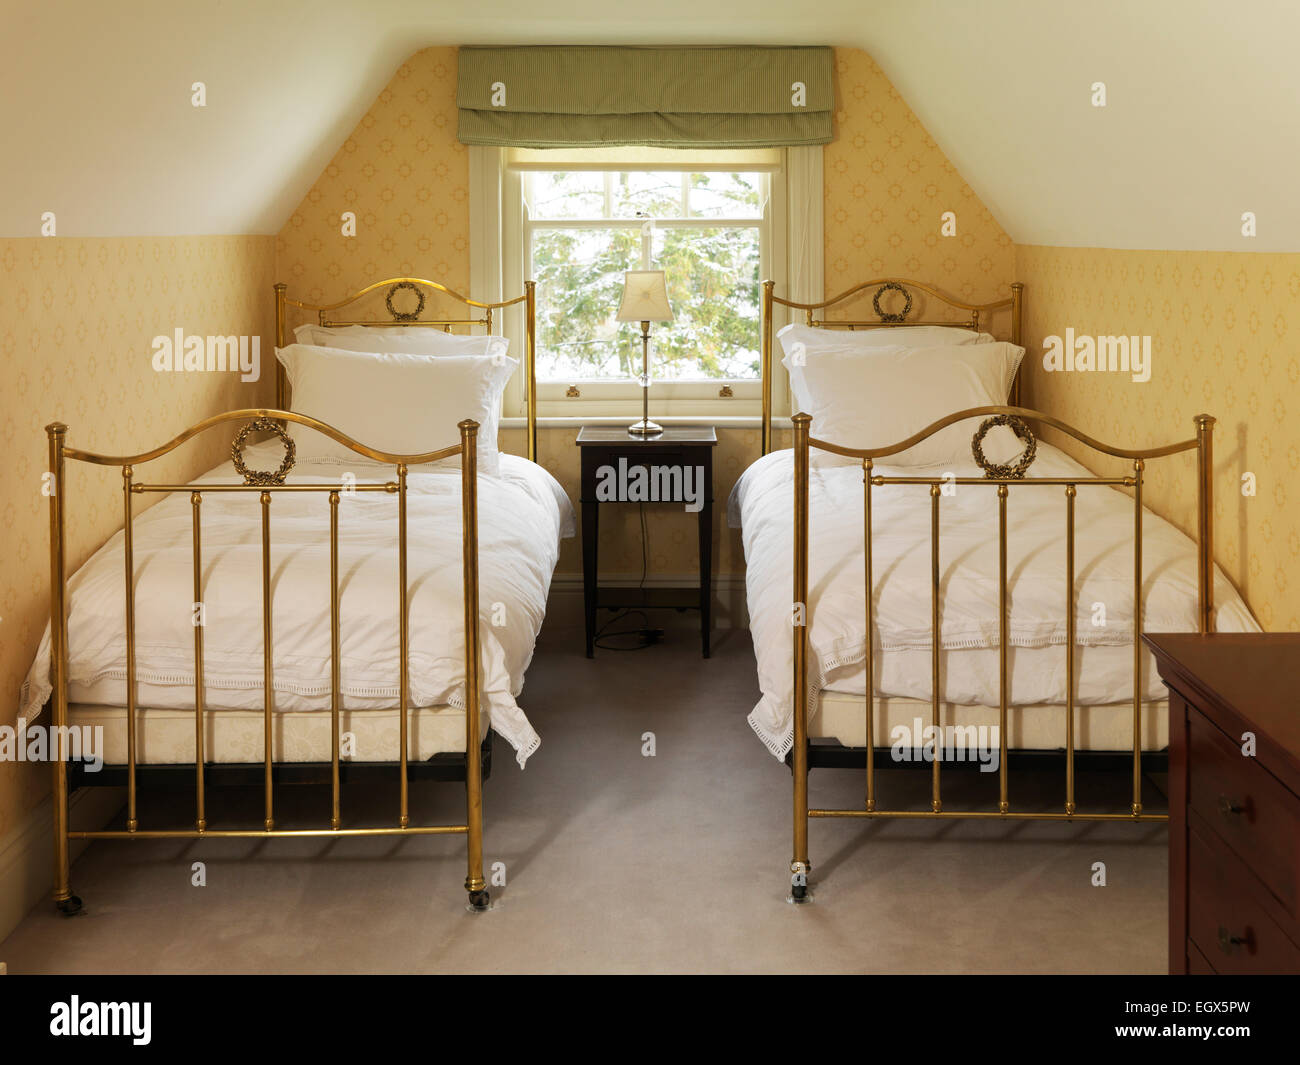 Two brass beds in attic bedroom, UK home Stock Photo: 79251281 - Alamy